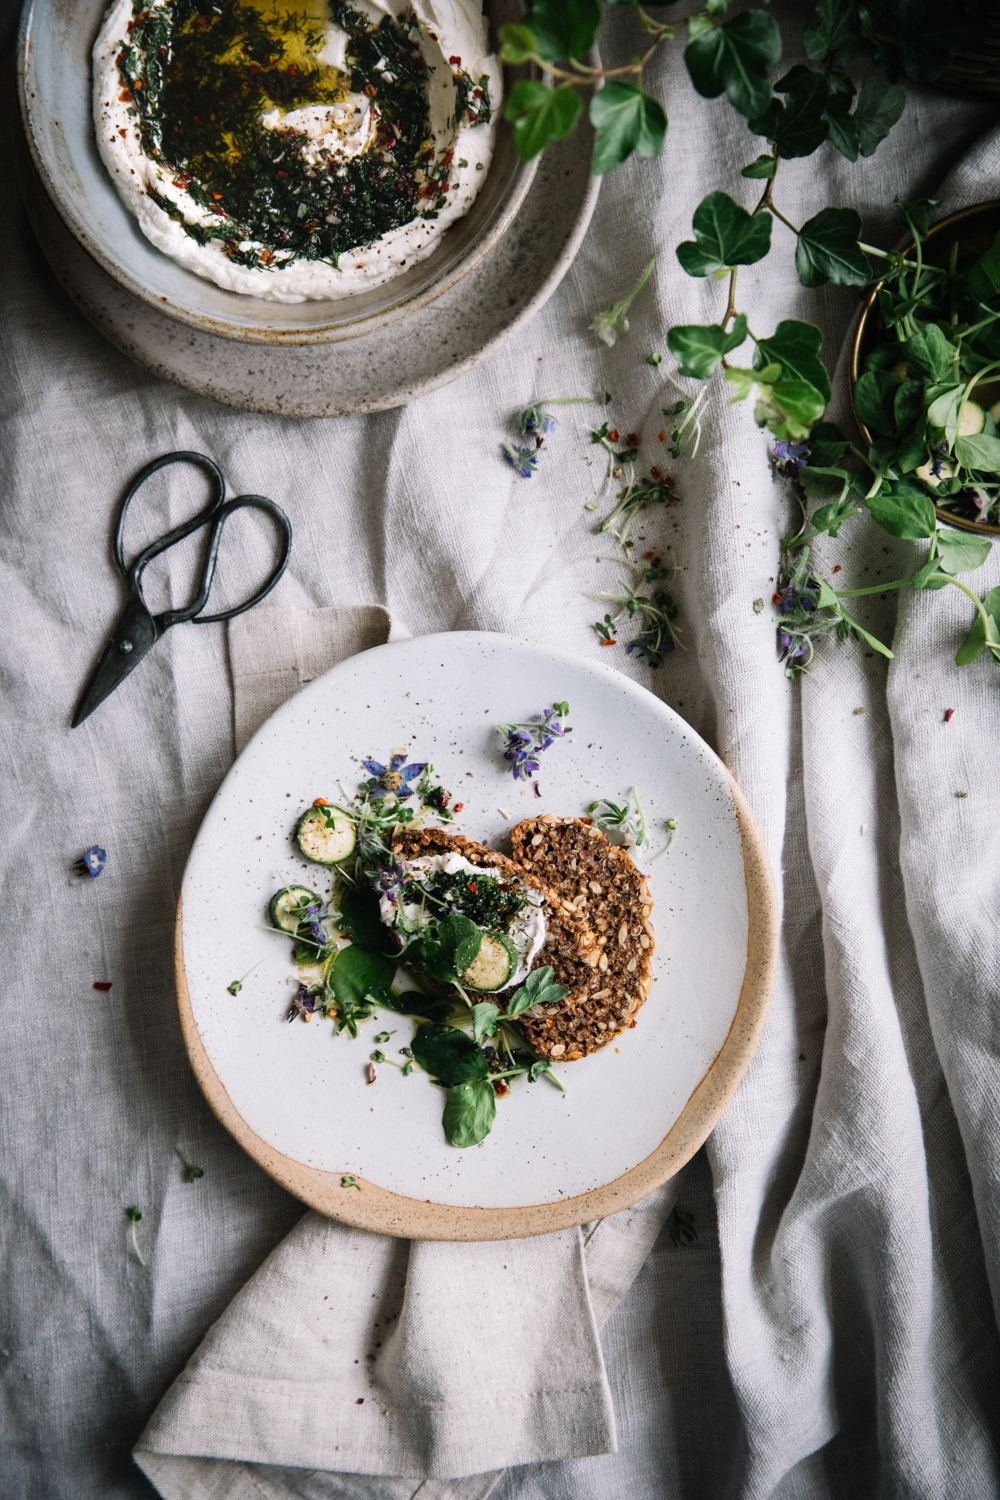 Herbed Goats Cheese w. Sprouts, Baby Courgettes & Borage⎜The Botanical Kitchen